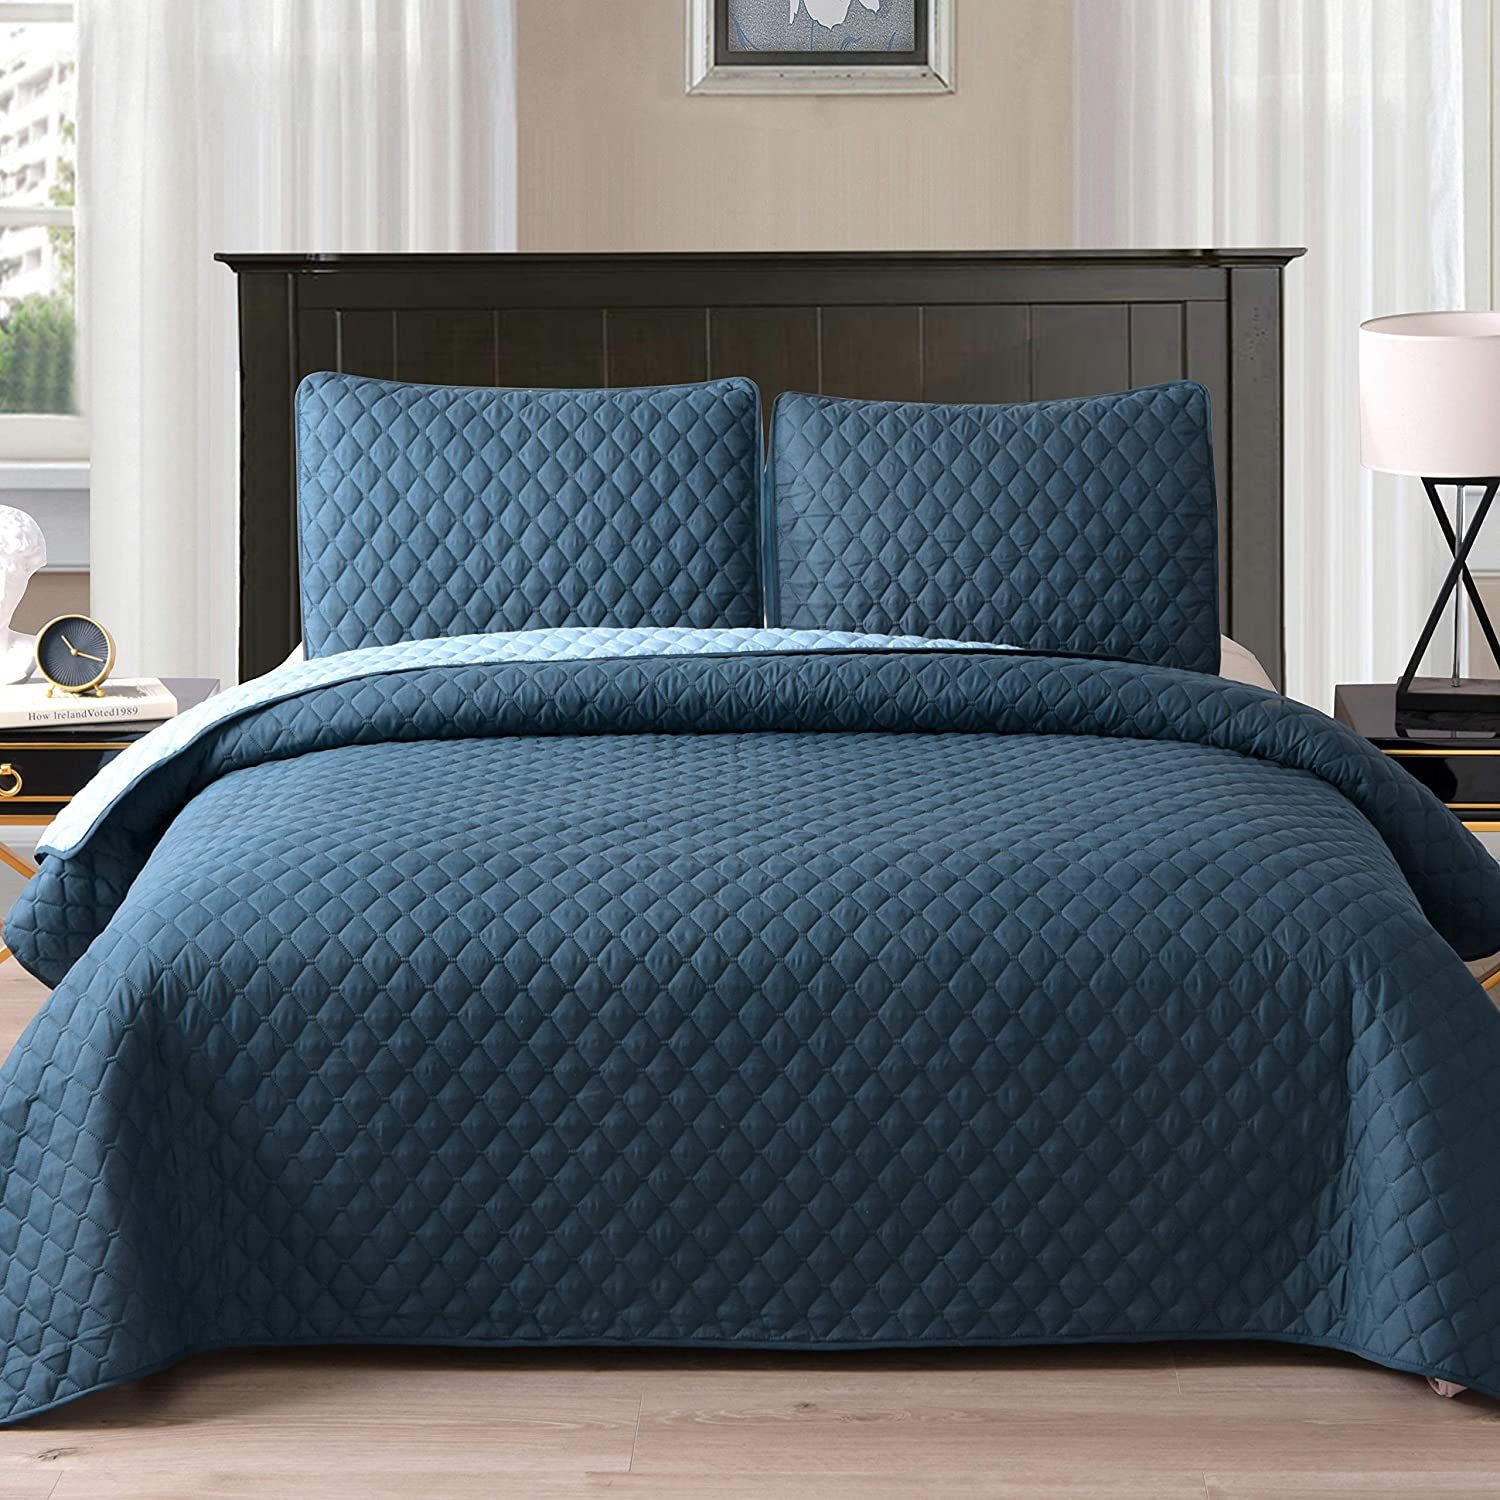 """Exclusivo Mezcla Ultrasonic Reversible 3-Piece Queen Size Quilt Set with Pillow Shams, Lightweight Bedspread/Coverlet/Bed Cover - (Navy Blue, 92""""x88"""")"""